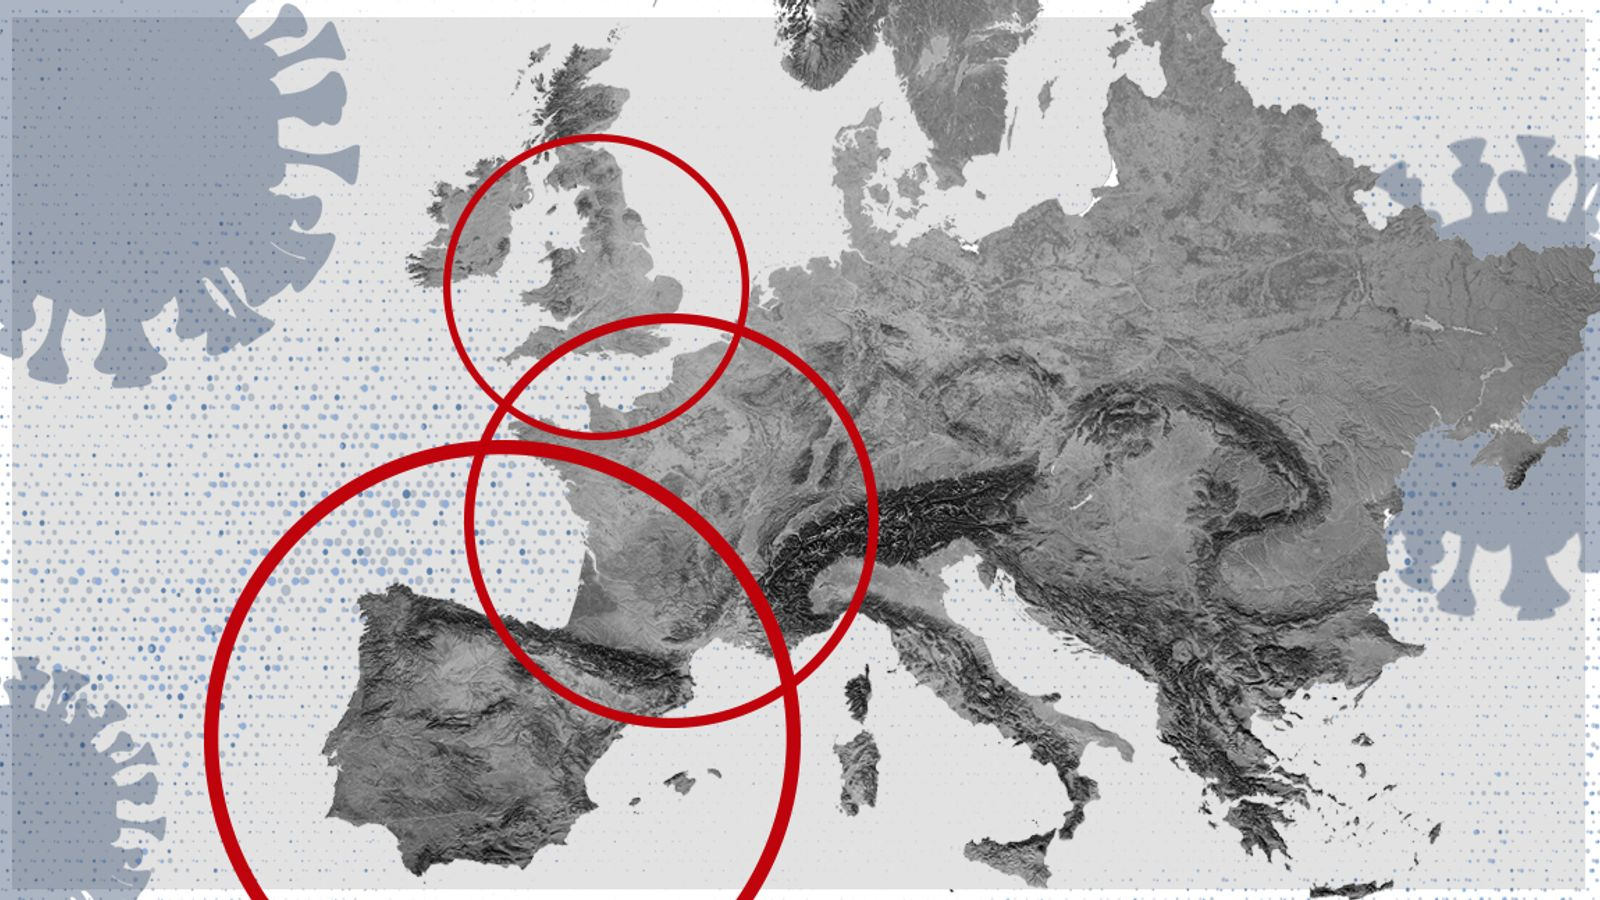 Coronavirus Five Of Europe S Top Covid 19 Hotspots Are In The North Of England World News Sky News